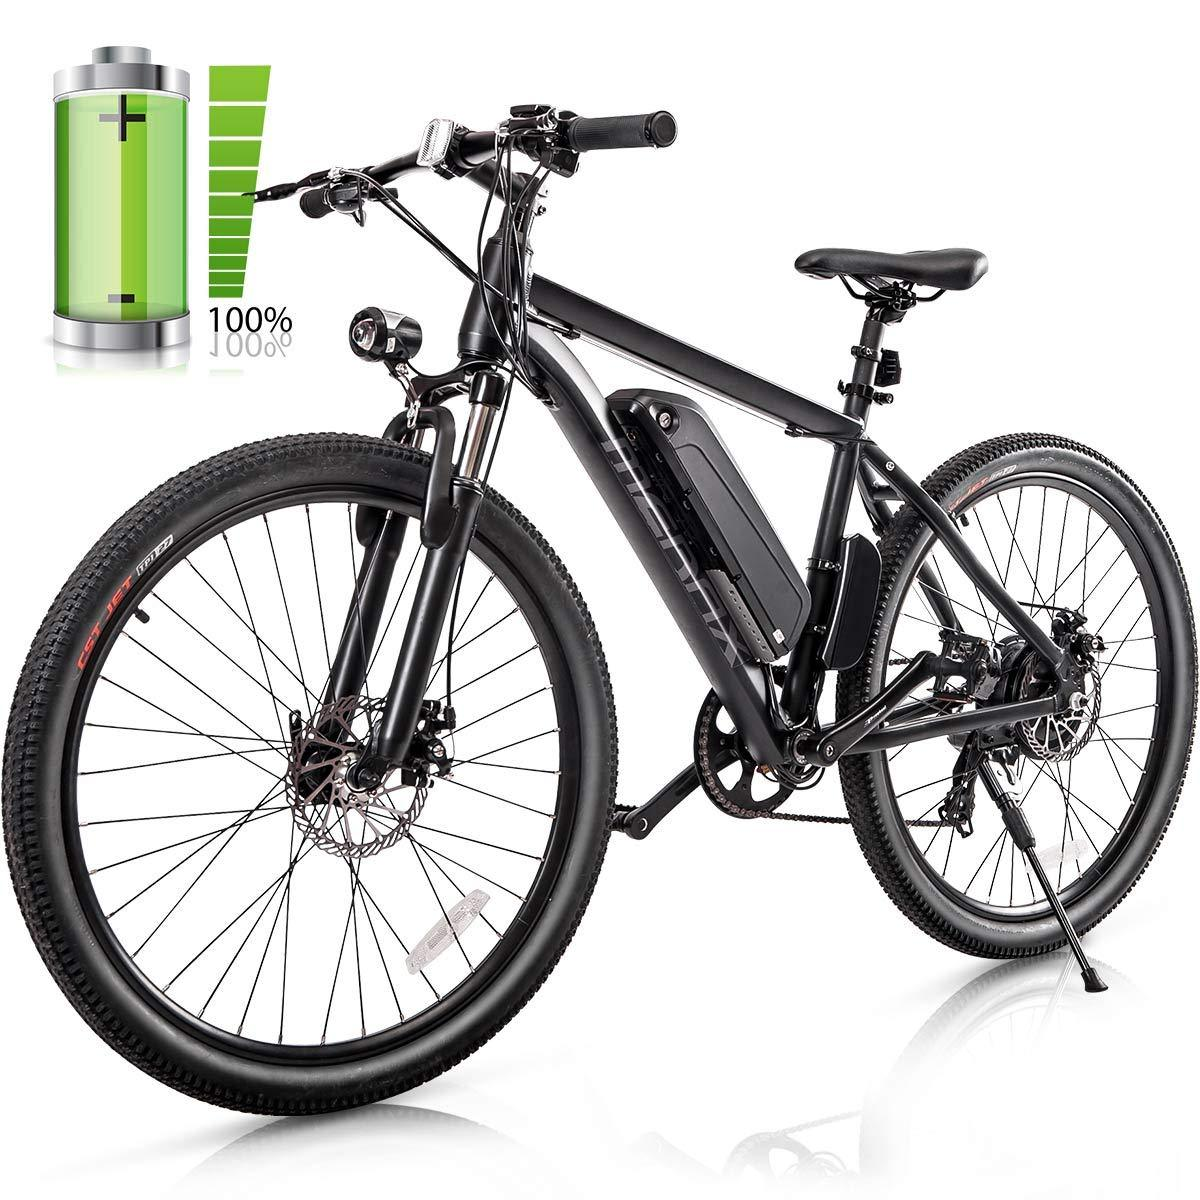 Merax 26 Electric Mountain Bicycle 350w Electric Bike With 36v 8 8ah Removable Lithium Ion Battery Electric Mountain Bike Electric Bicycle Electric Bike